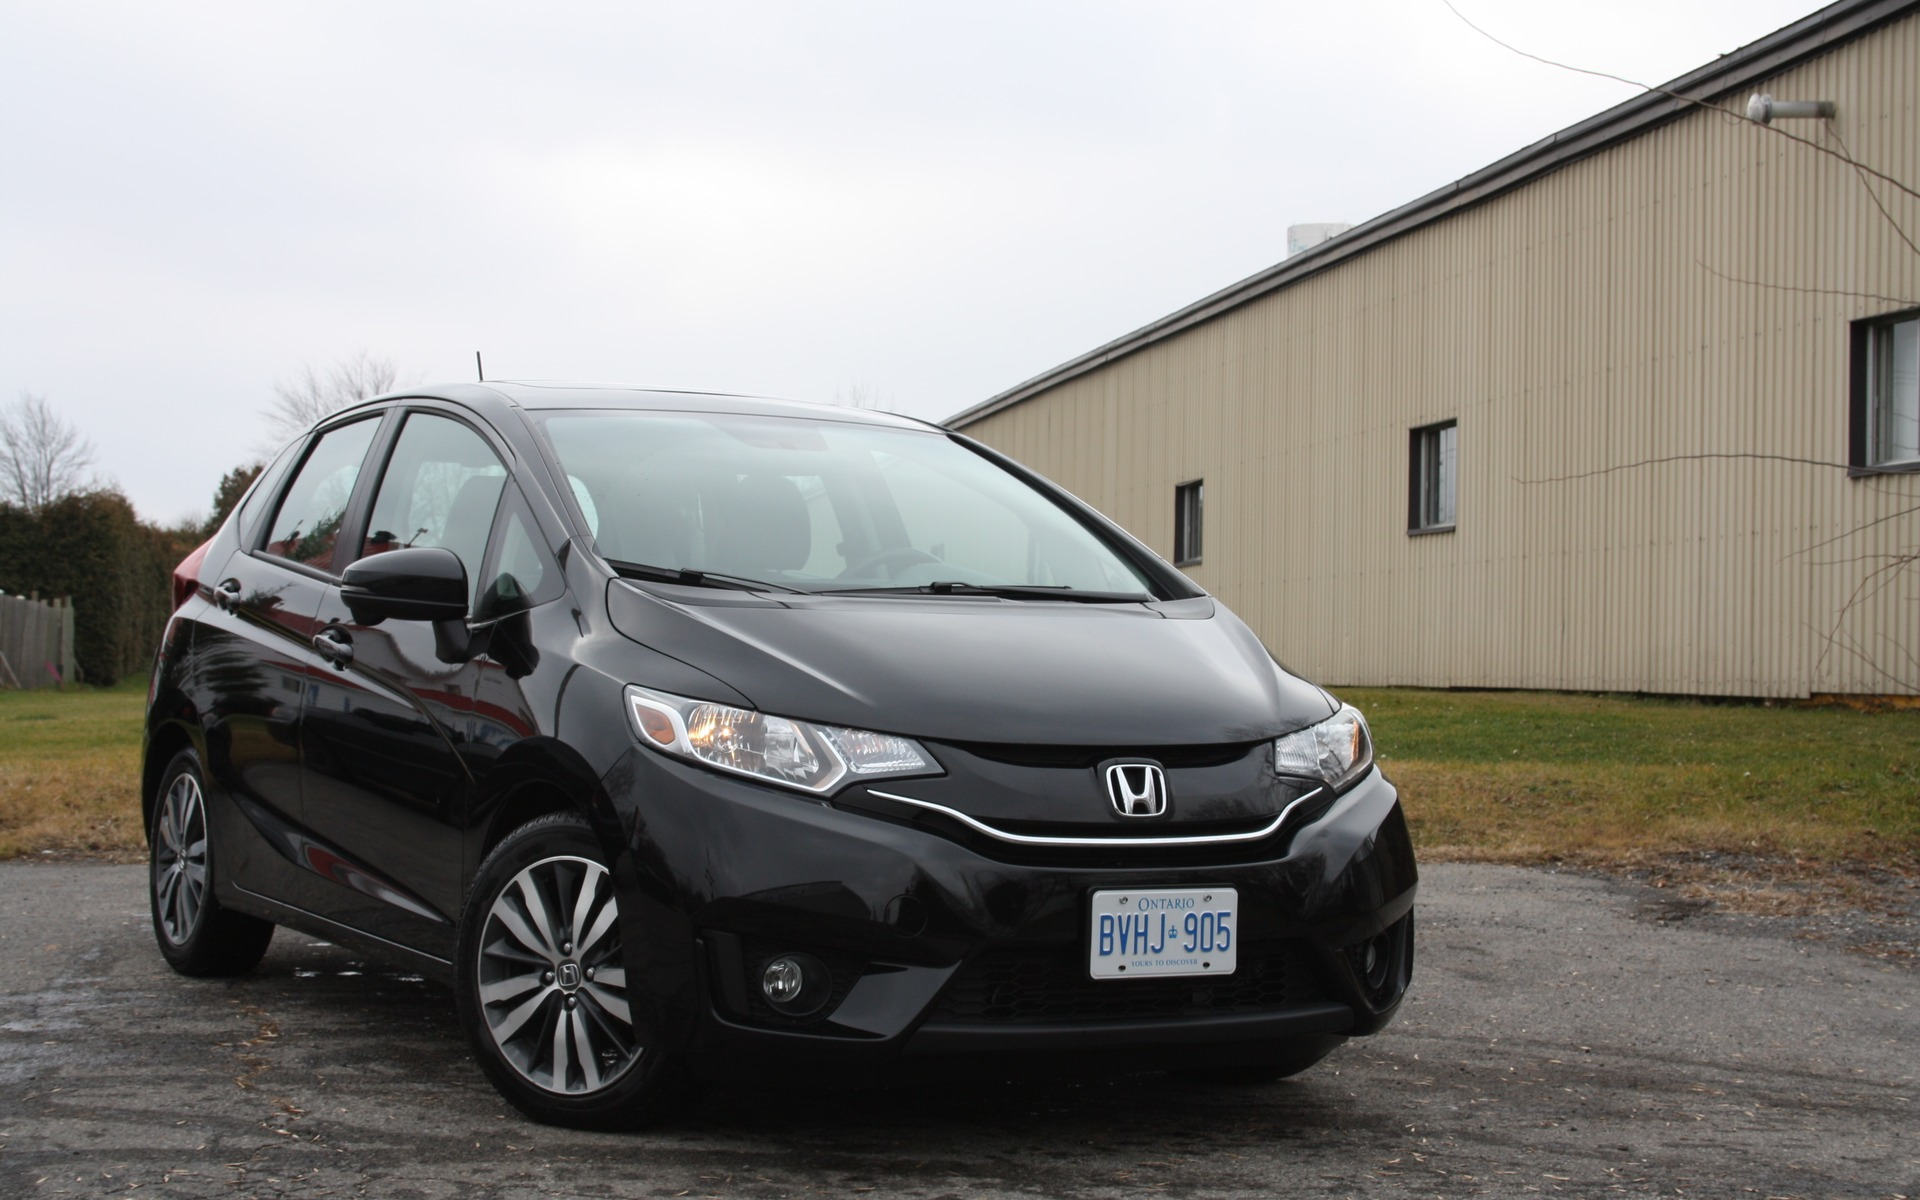 The Honda Fit was totally redesigned for 2015